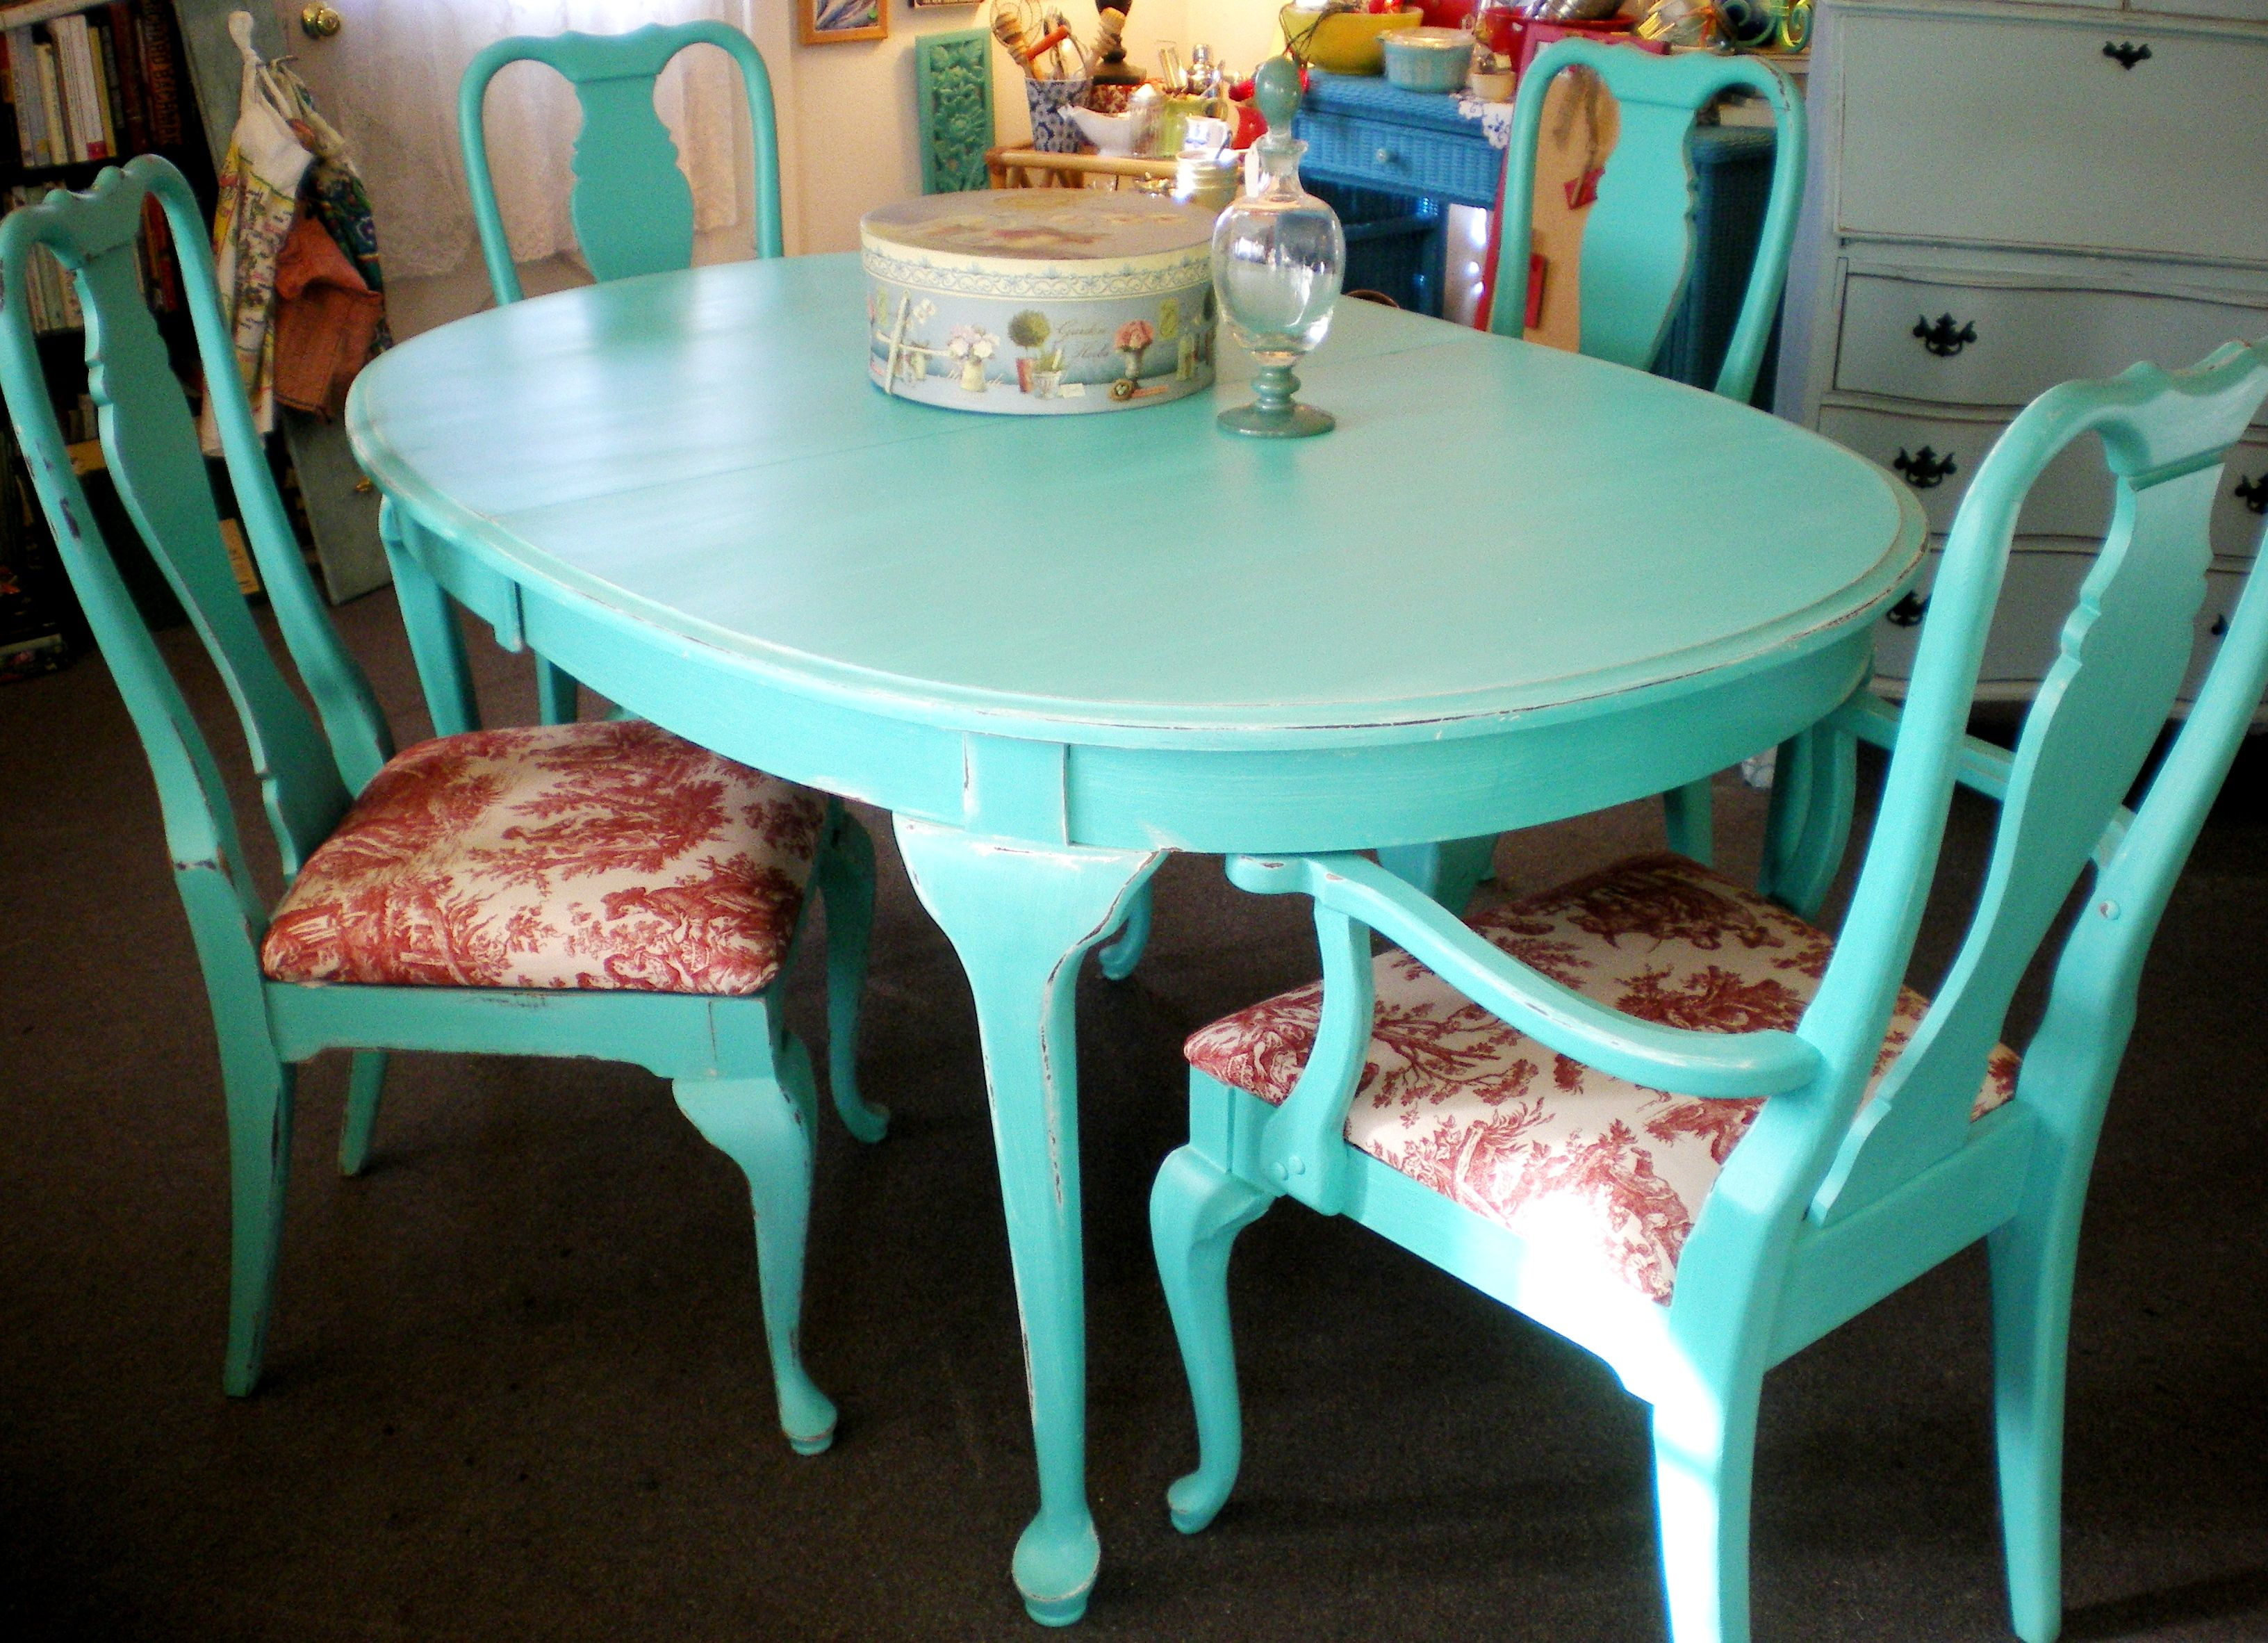 painted queen anne sofa table clic sofas turquoise shabby dining 2 leaves with red toile